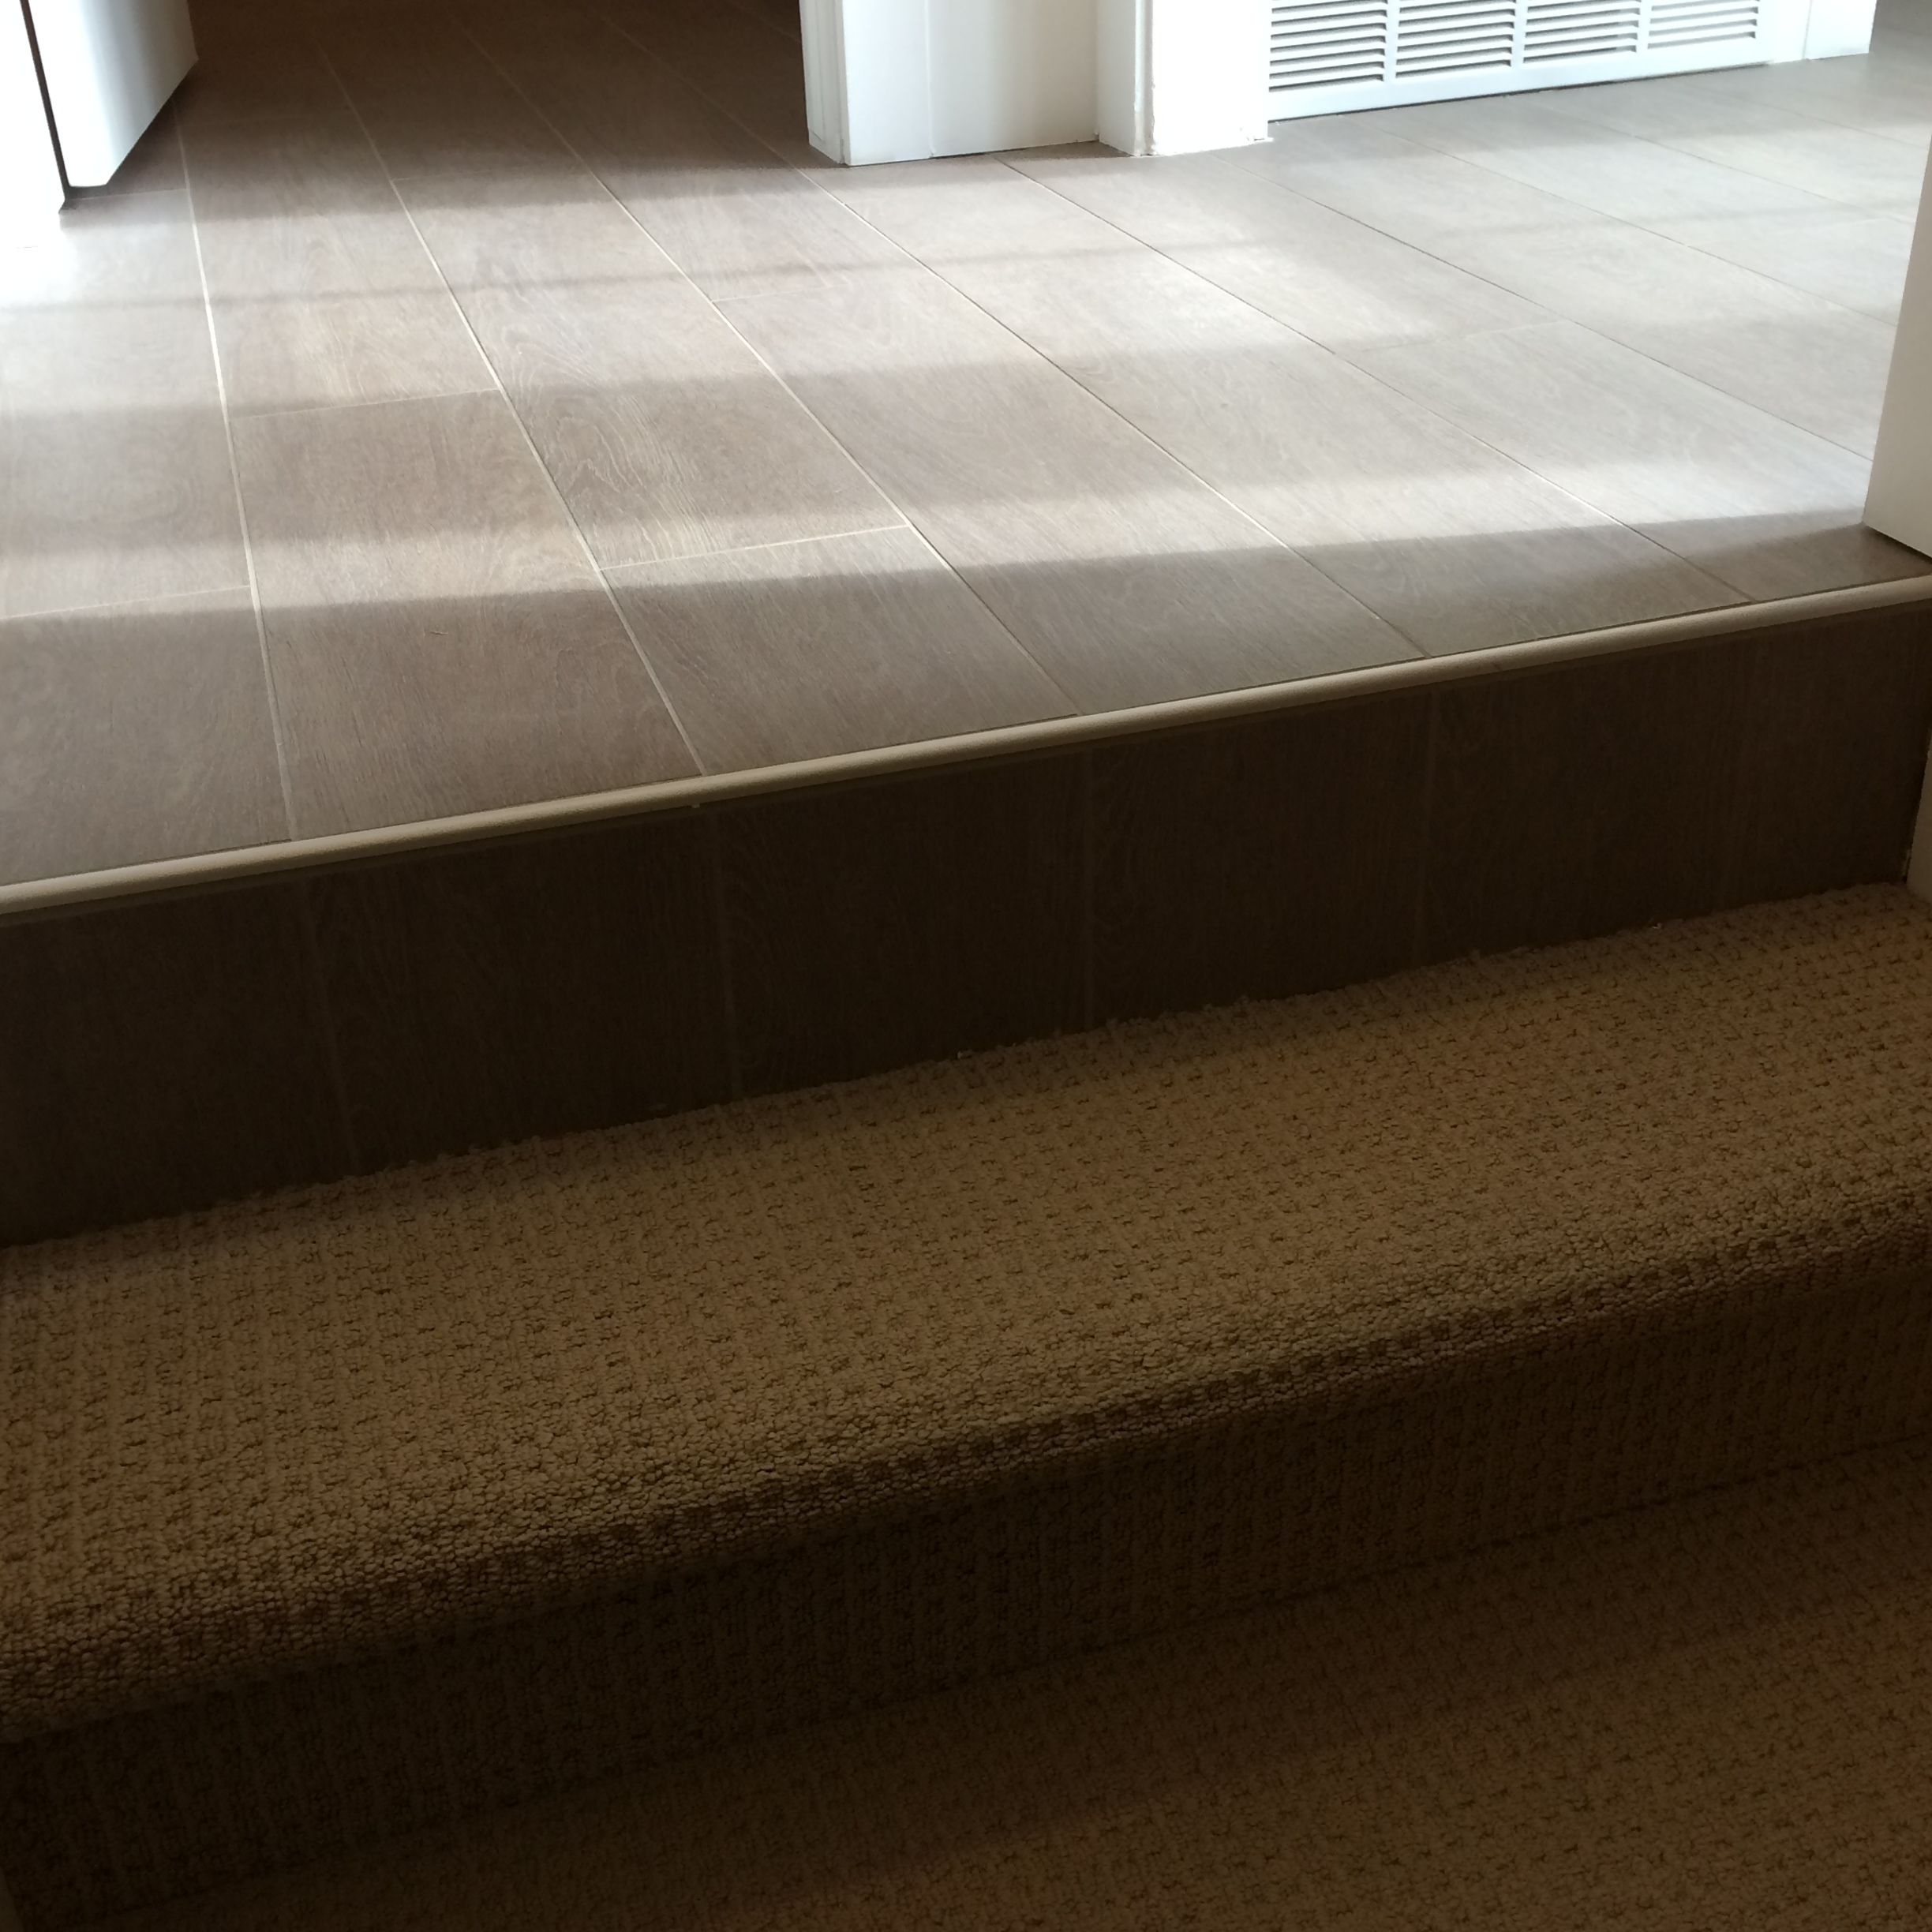 Best Wood Floor Tile With Metal End Cap At Top Of Staircase 400 x 300